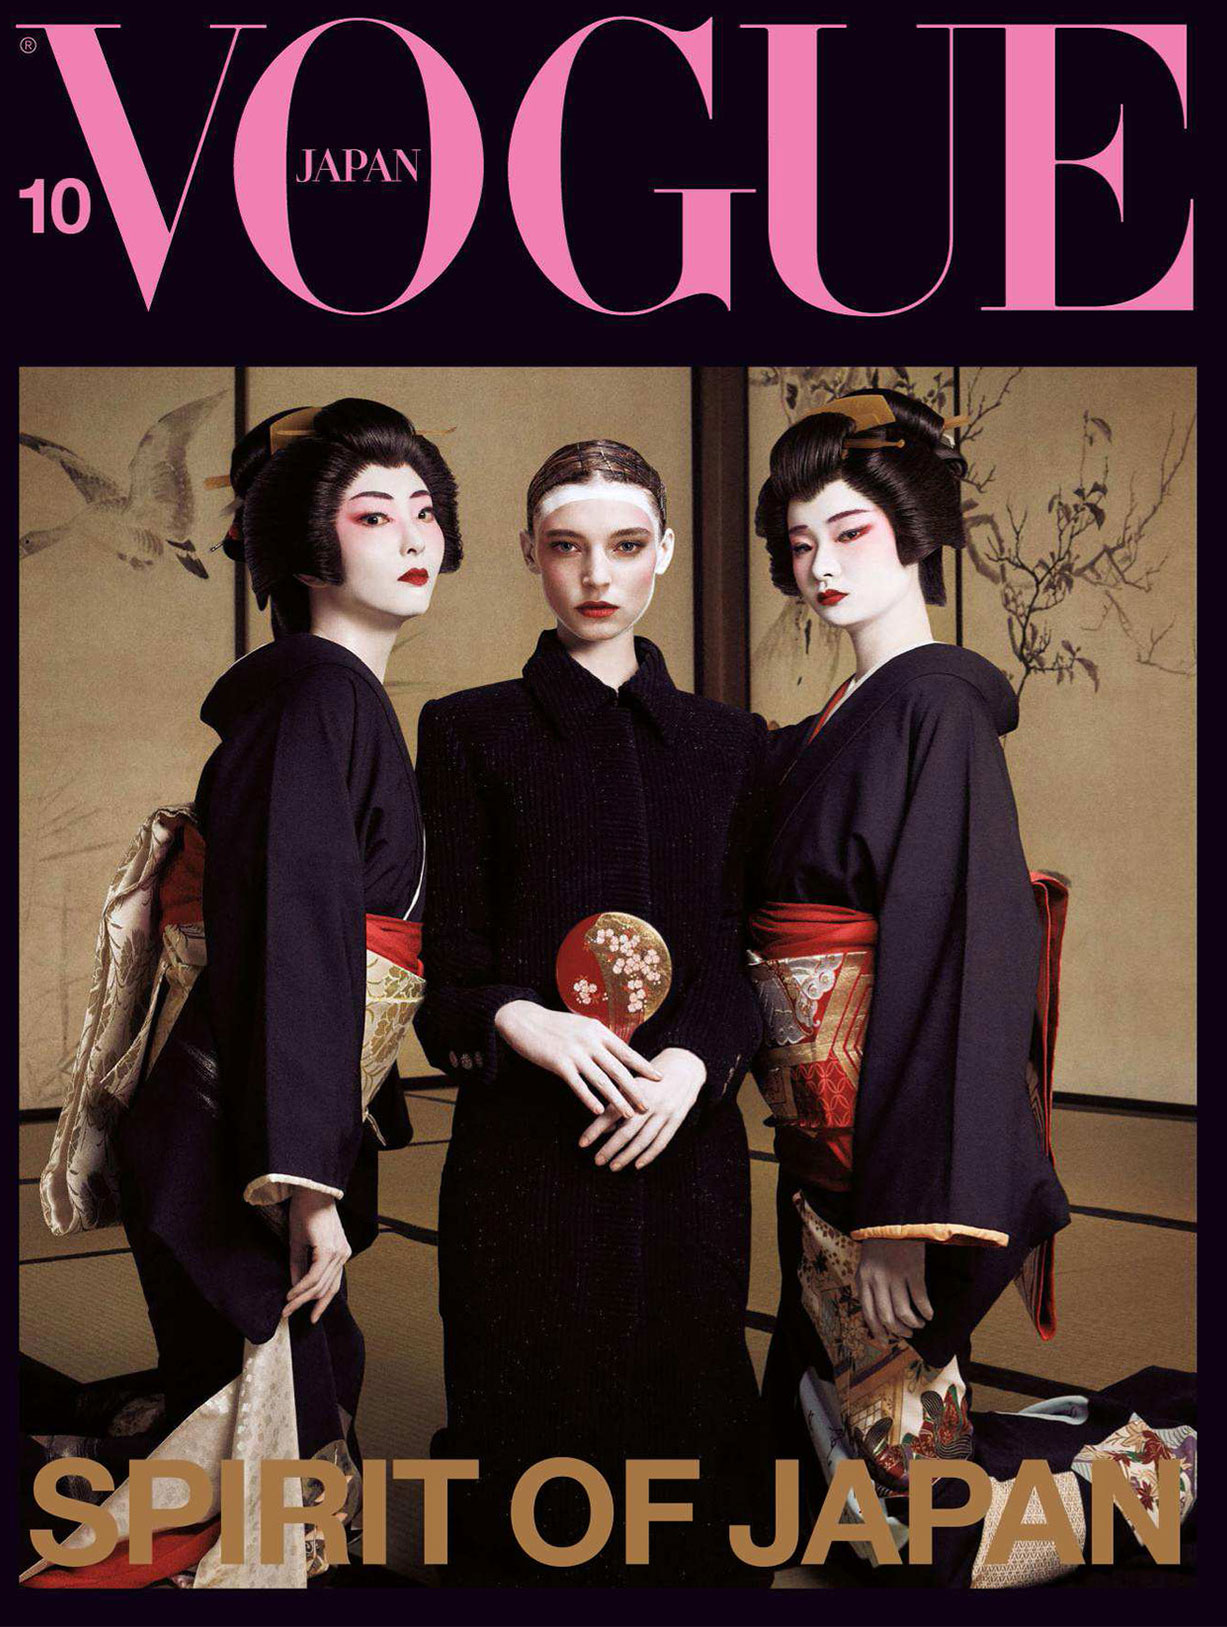 Spirit of Japan / Ansley Gulielmi and Tsugumi Nakamura by Luigi Murenu and Iango Henzi / Vogue Japan october 2018